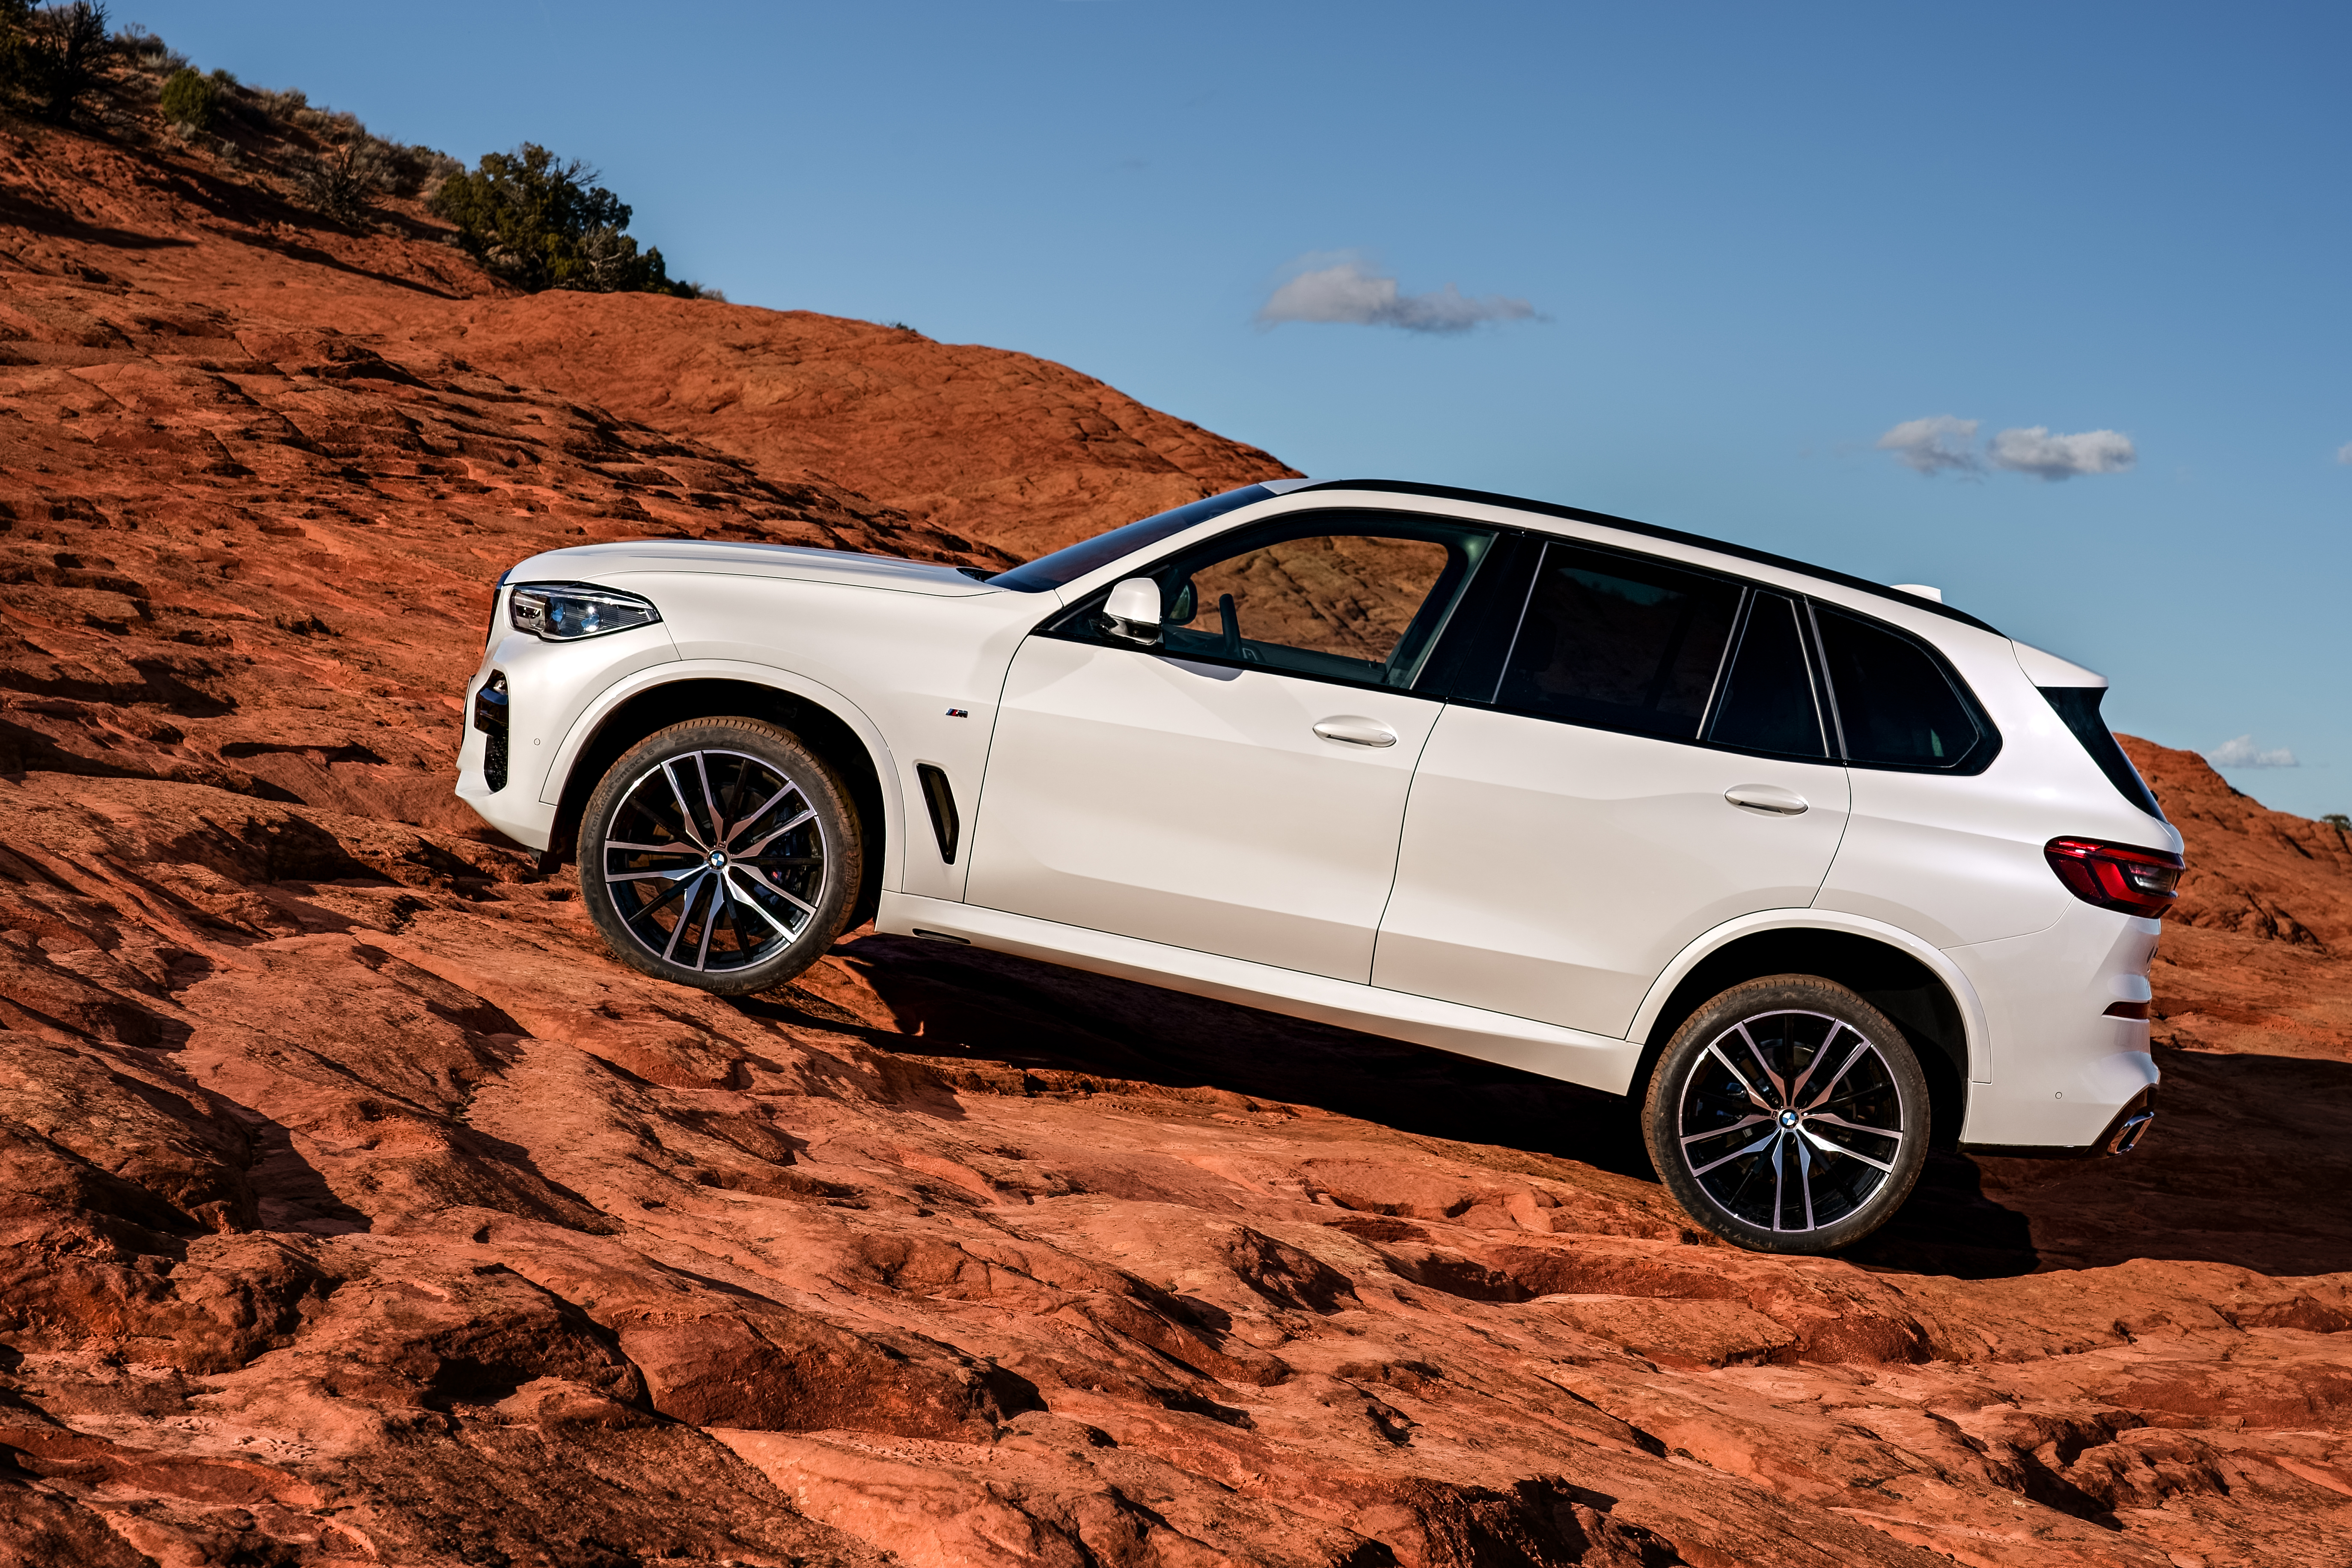 P90304001_highRes_the-all-new-bmw-x5-0.jpg